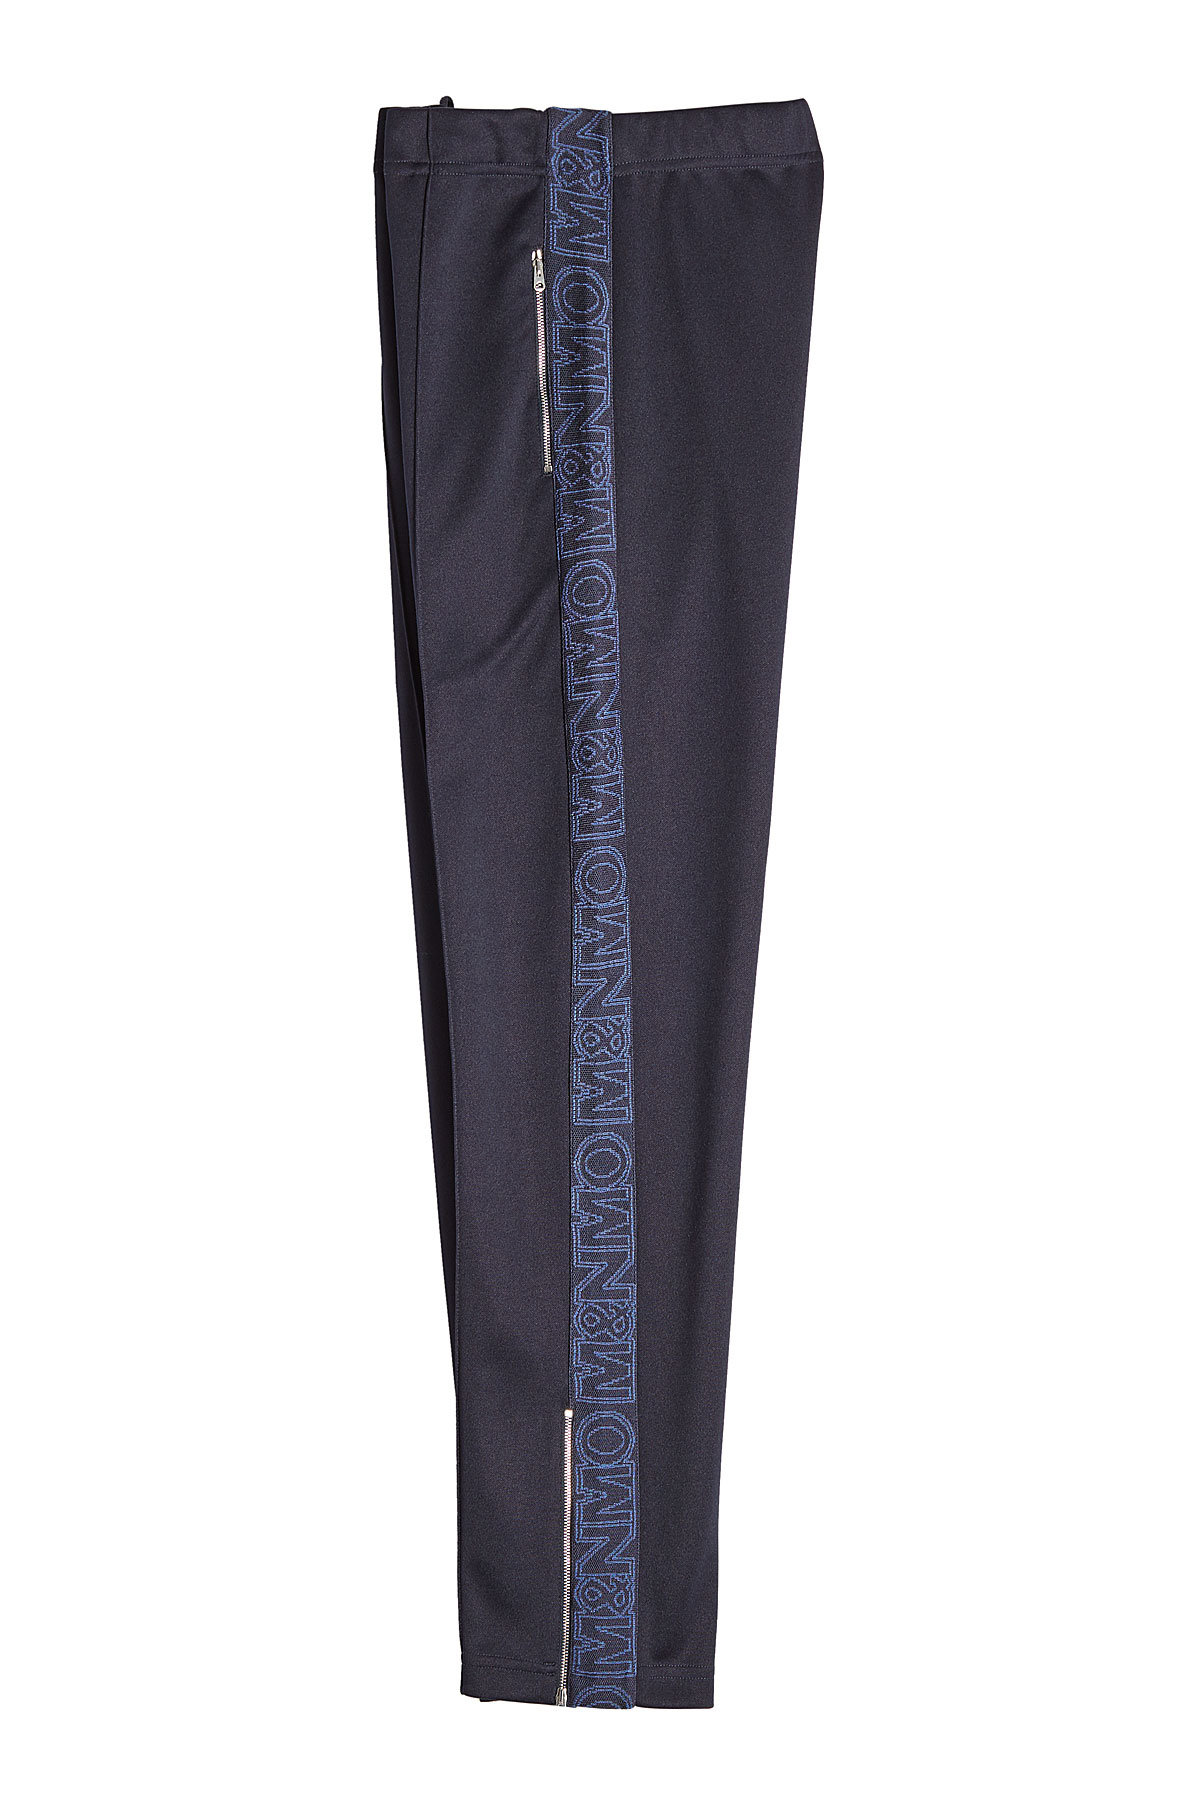 Pants with Cotton | STELLA MCCARTNEY